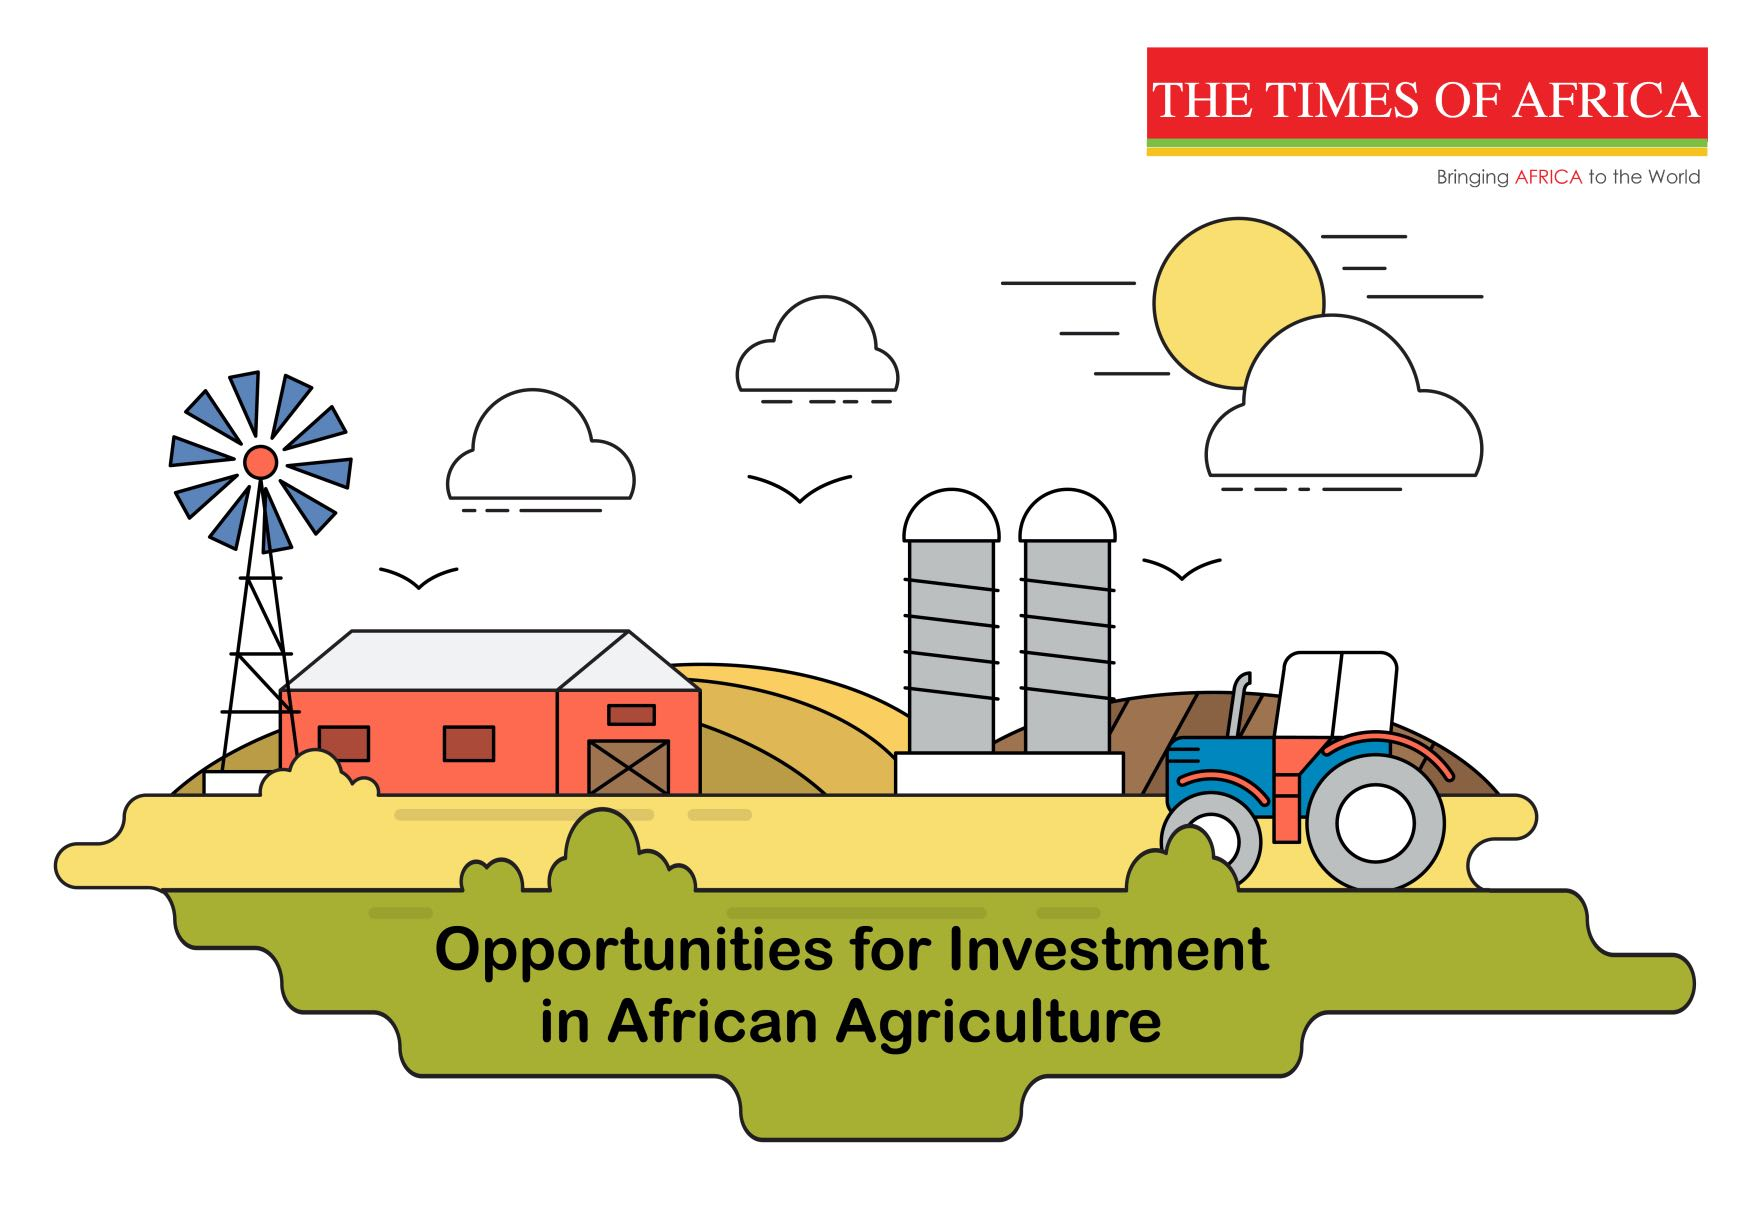 Investment Opportunities in African Agriculture